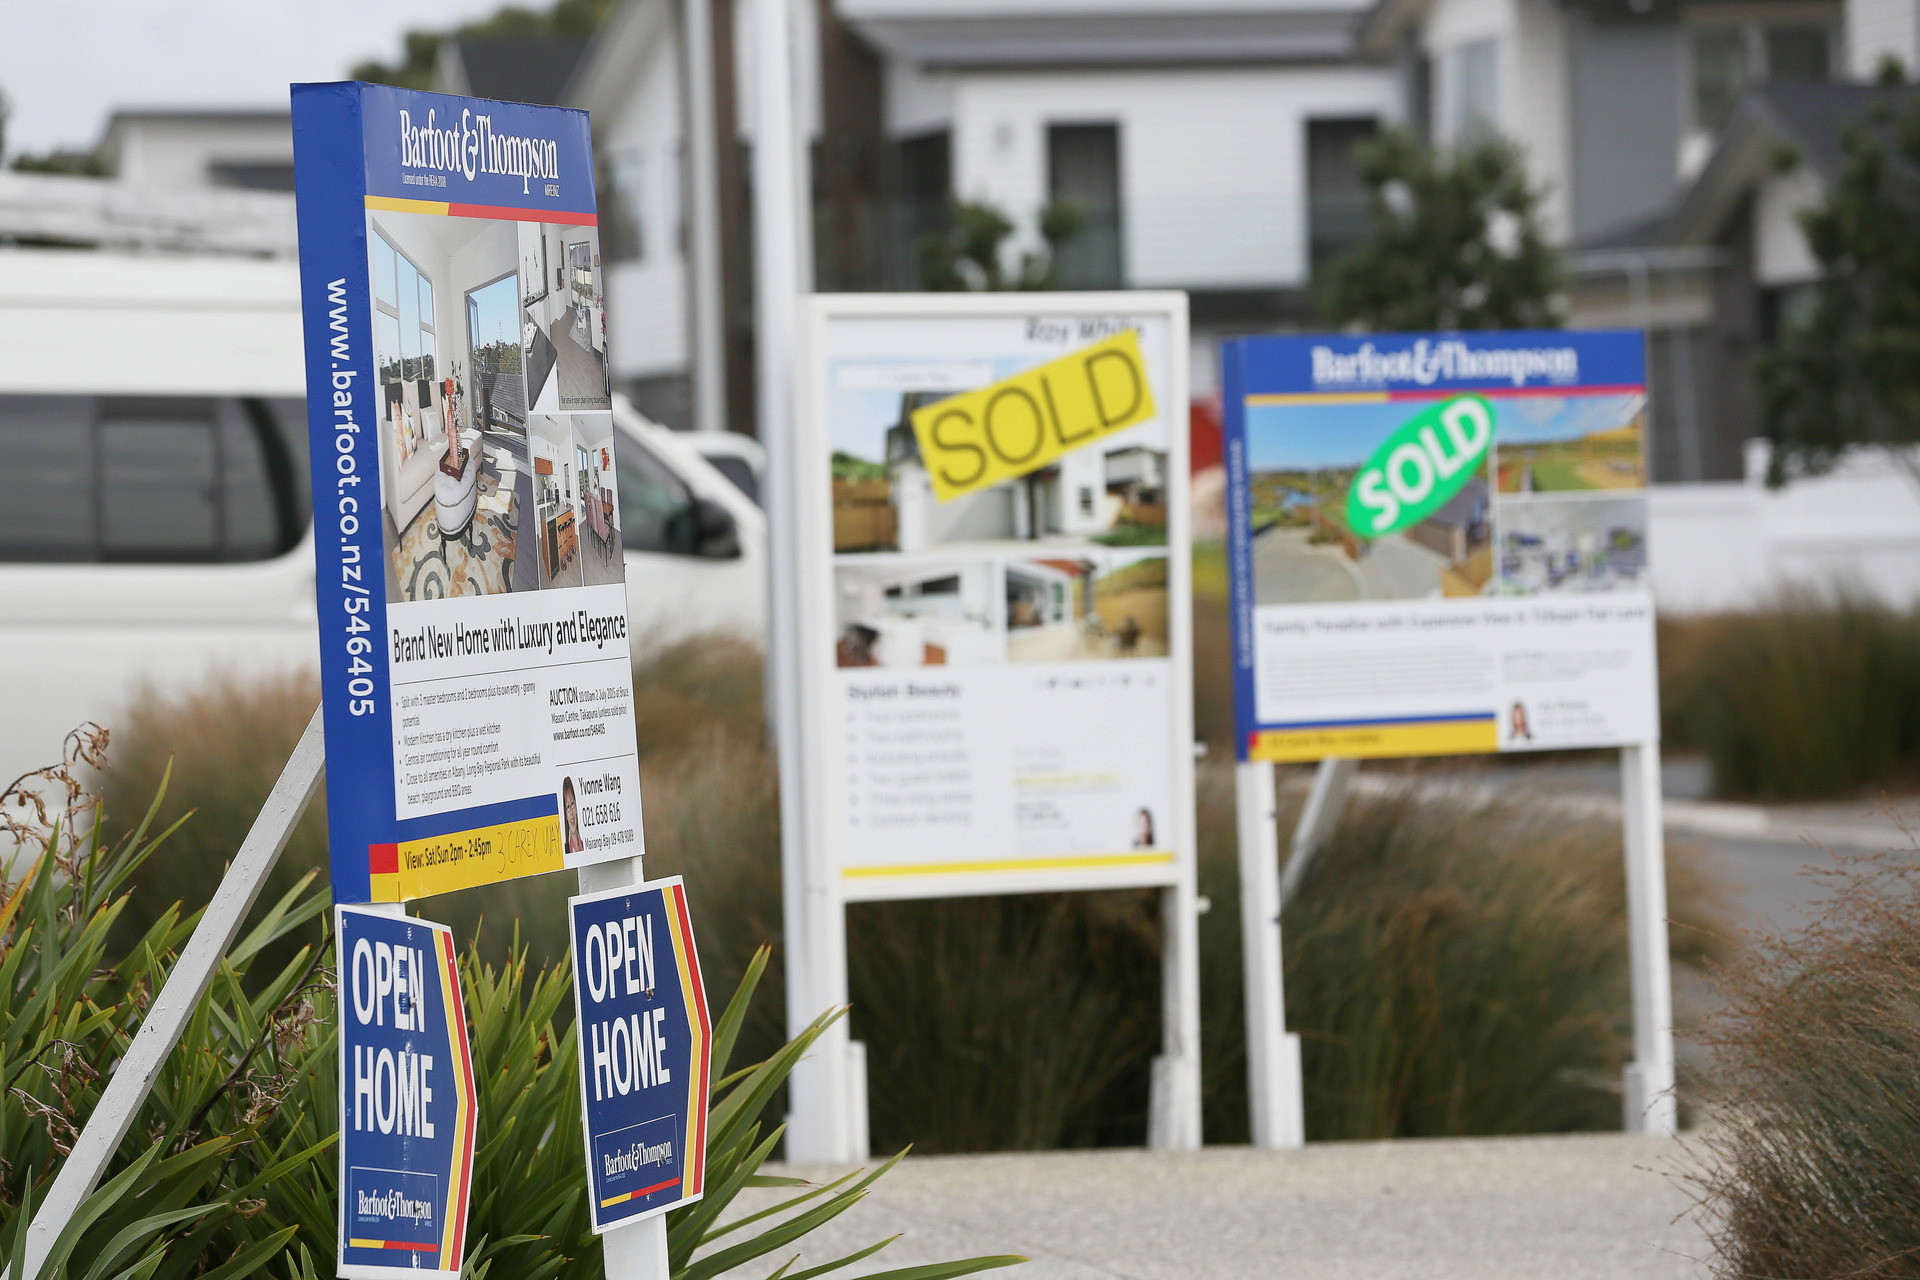 Three factors tipped to hit Kiwi property market in 2019